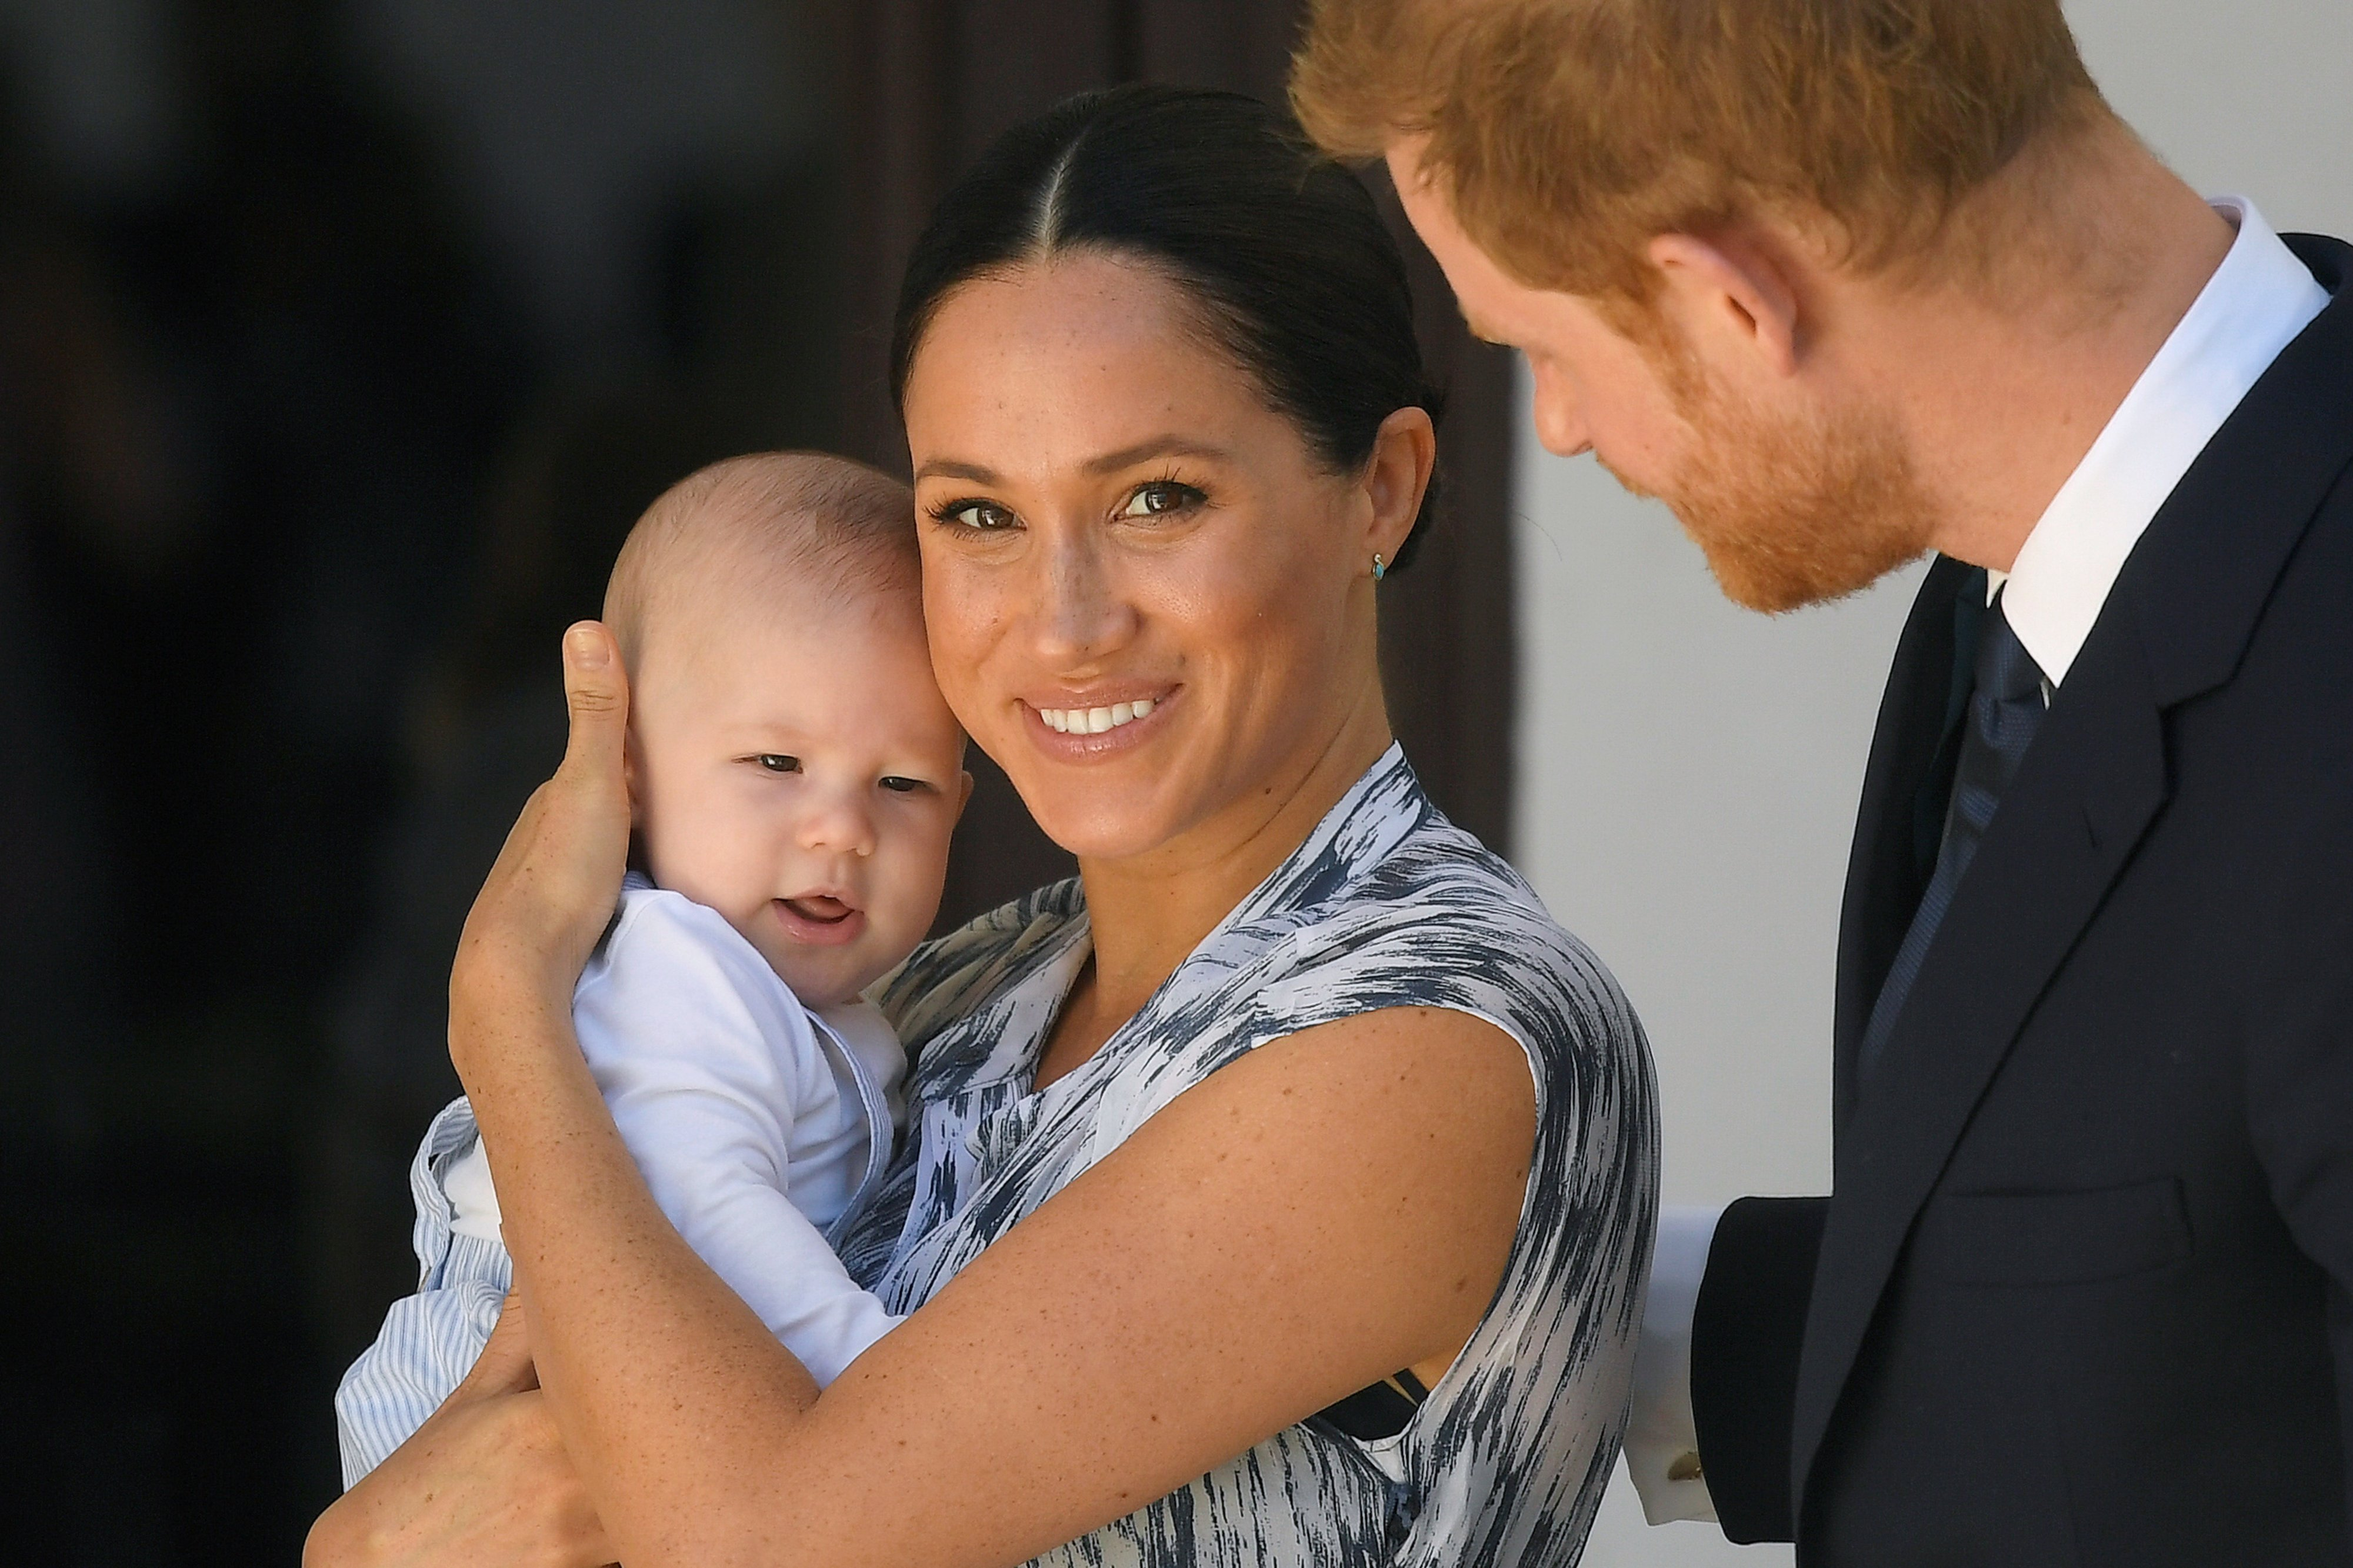 Prince Harry, Meghan Markle, and their son, Archie during their tour to Africa on September 25, 2019, in Cape Town, South Africa. | Source: Getty Images.